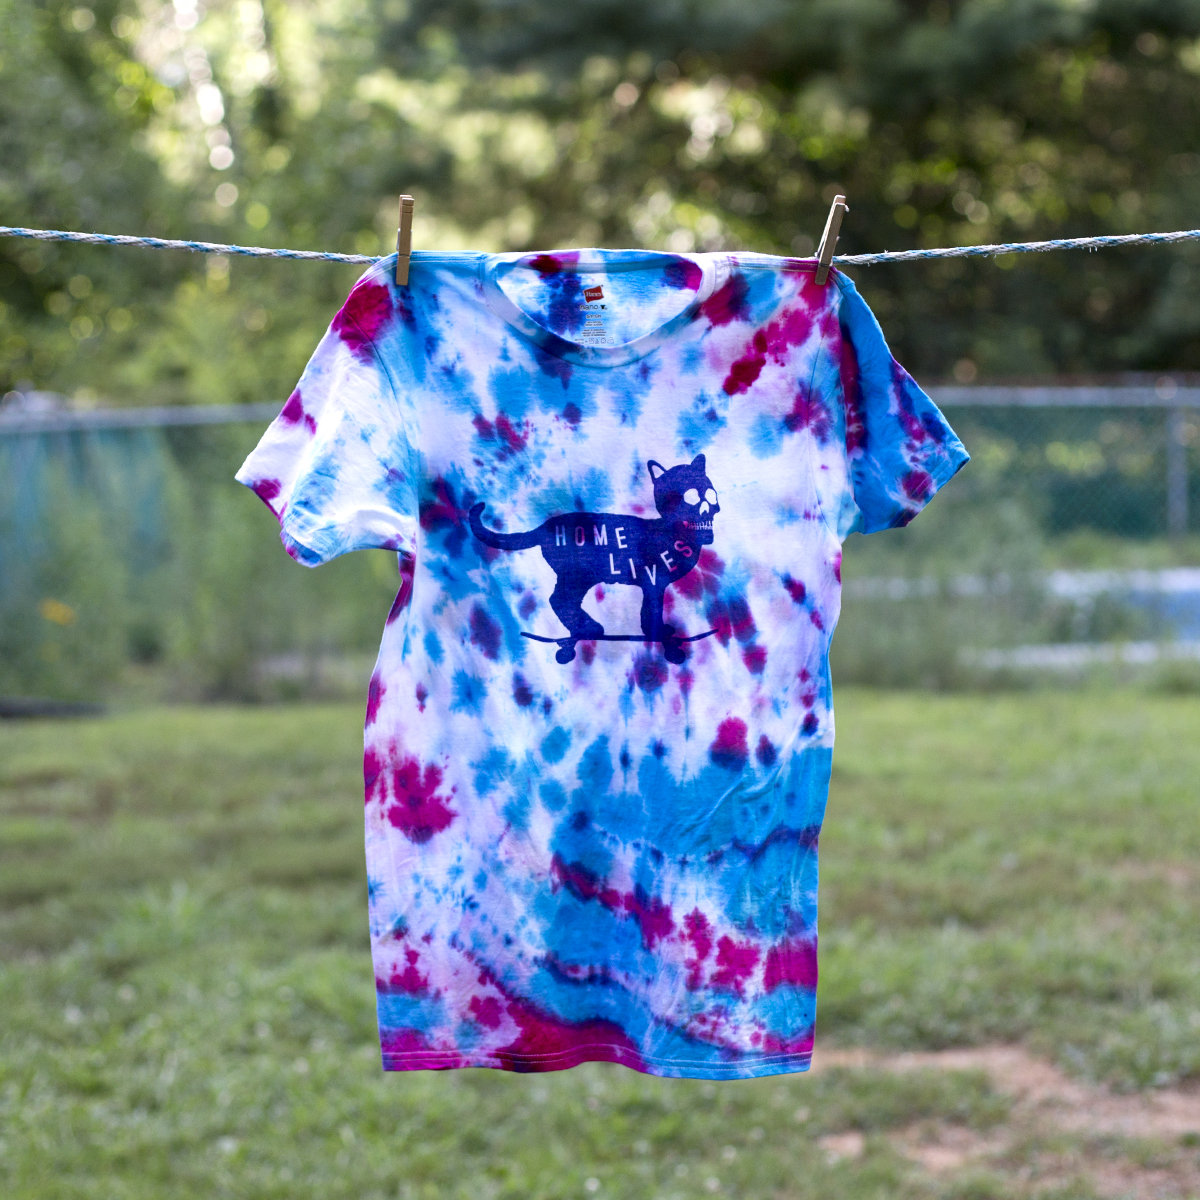 Cool Waves Kitty Cat Tie Dye Shirt Home Lives